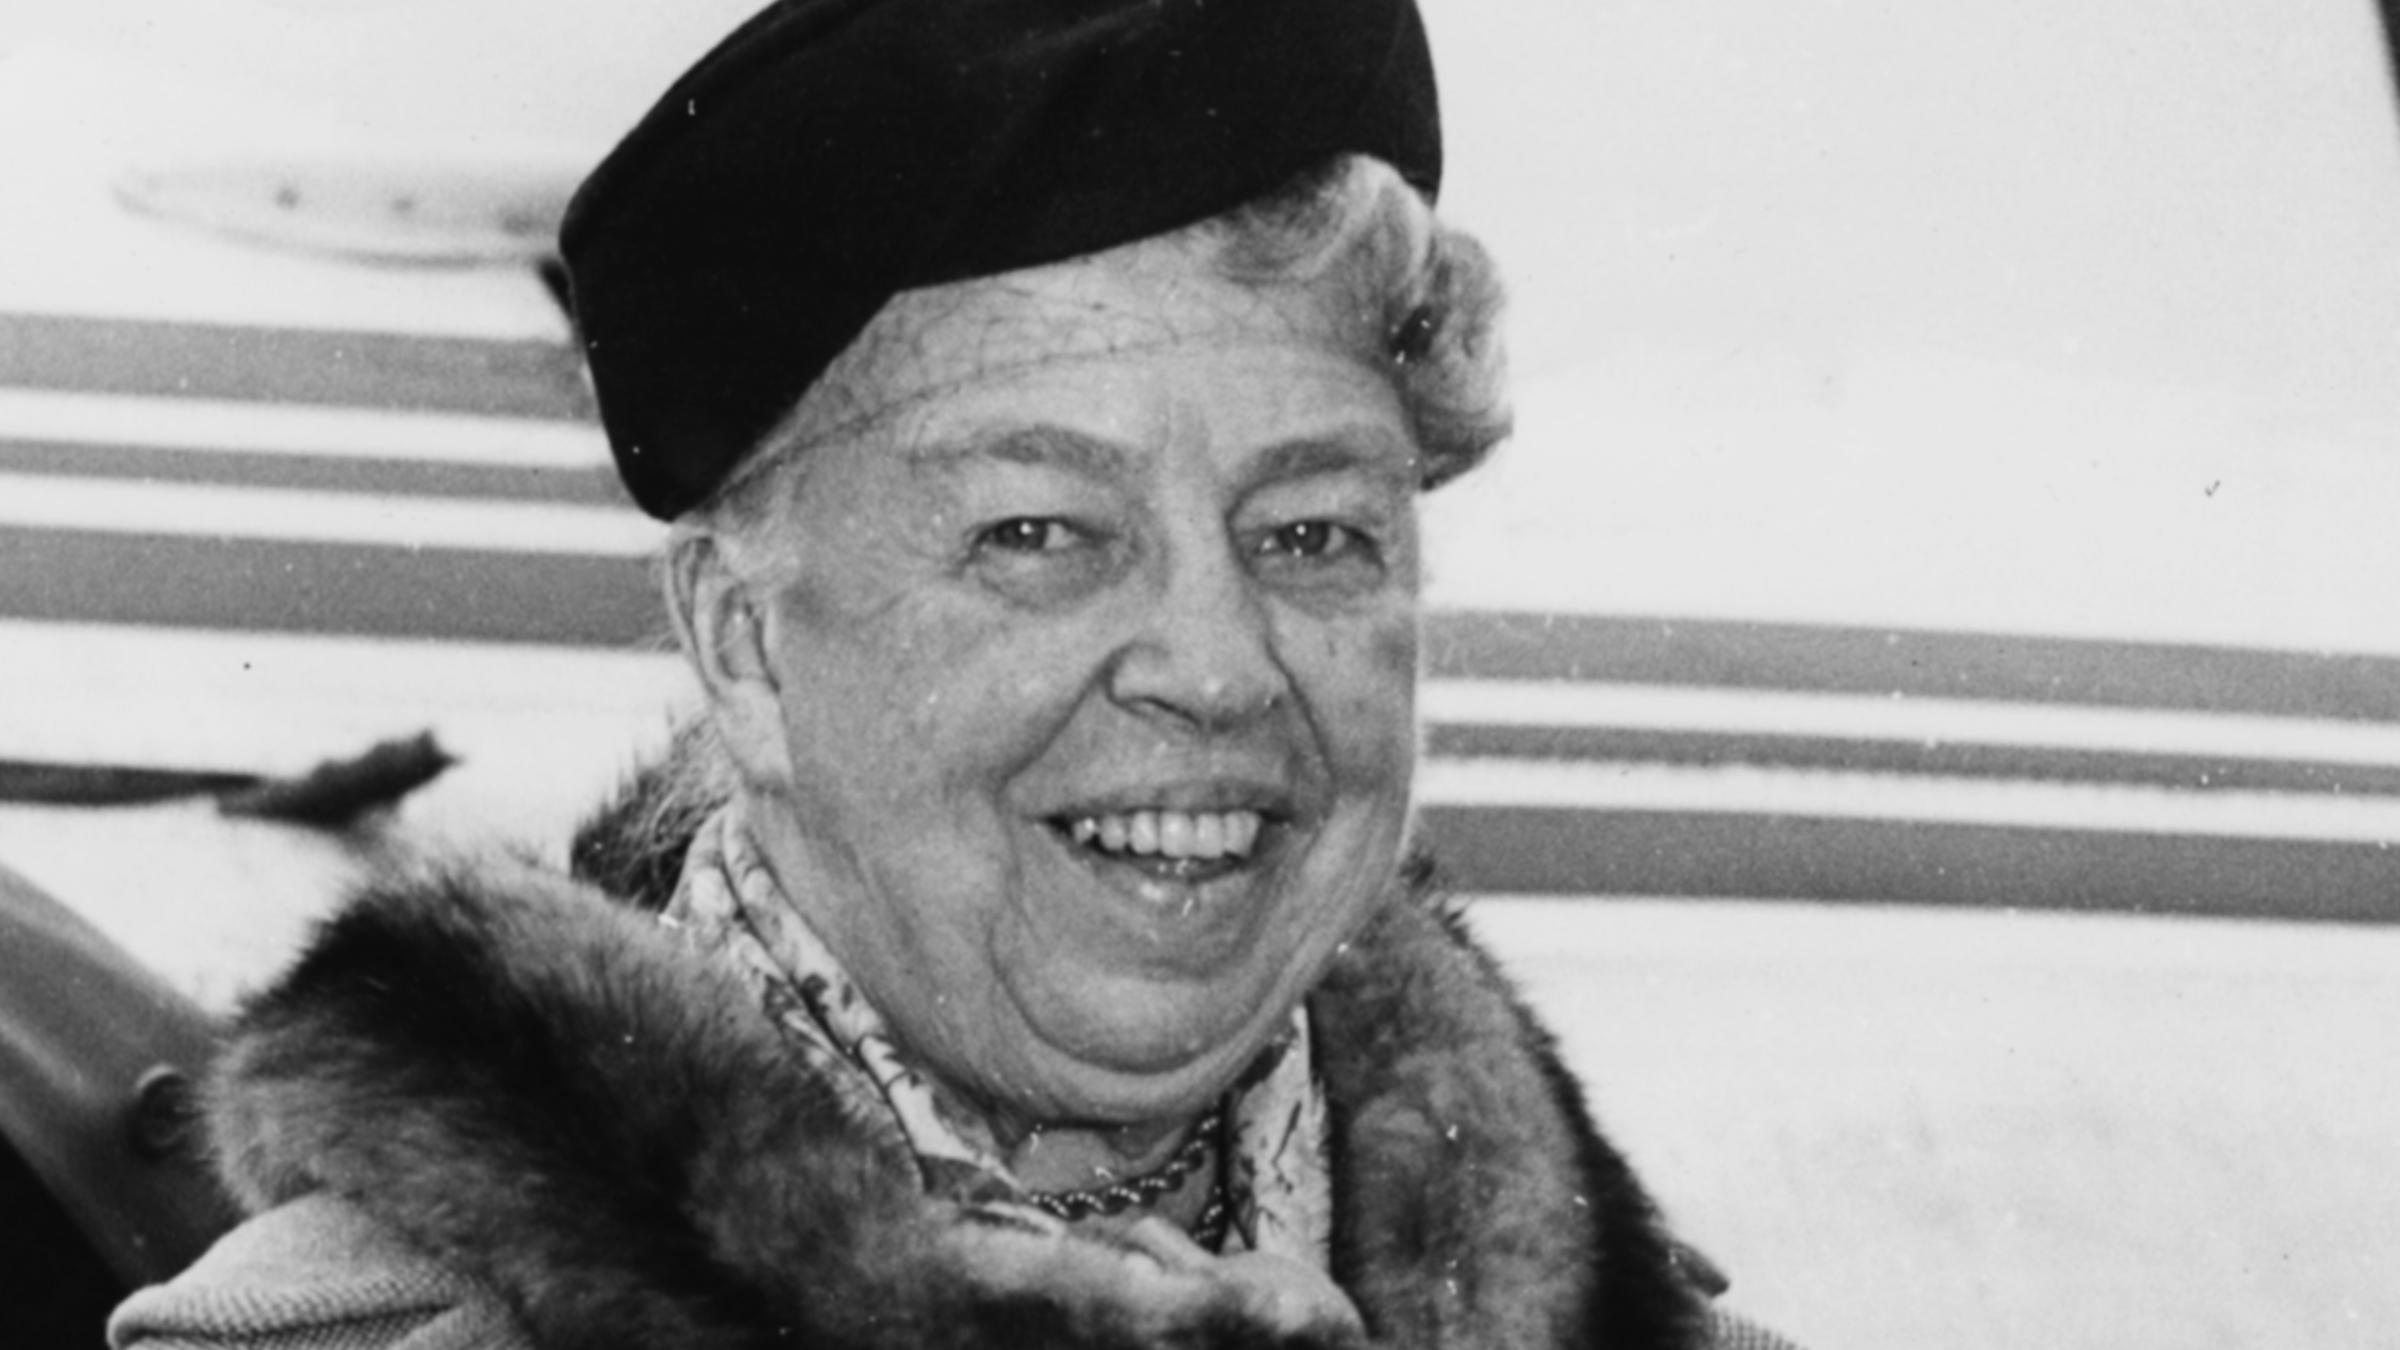 biography of eleanor roosevelt essay Eleanor roosevelt: a biography term papers, essays and research papers available.